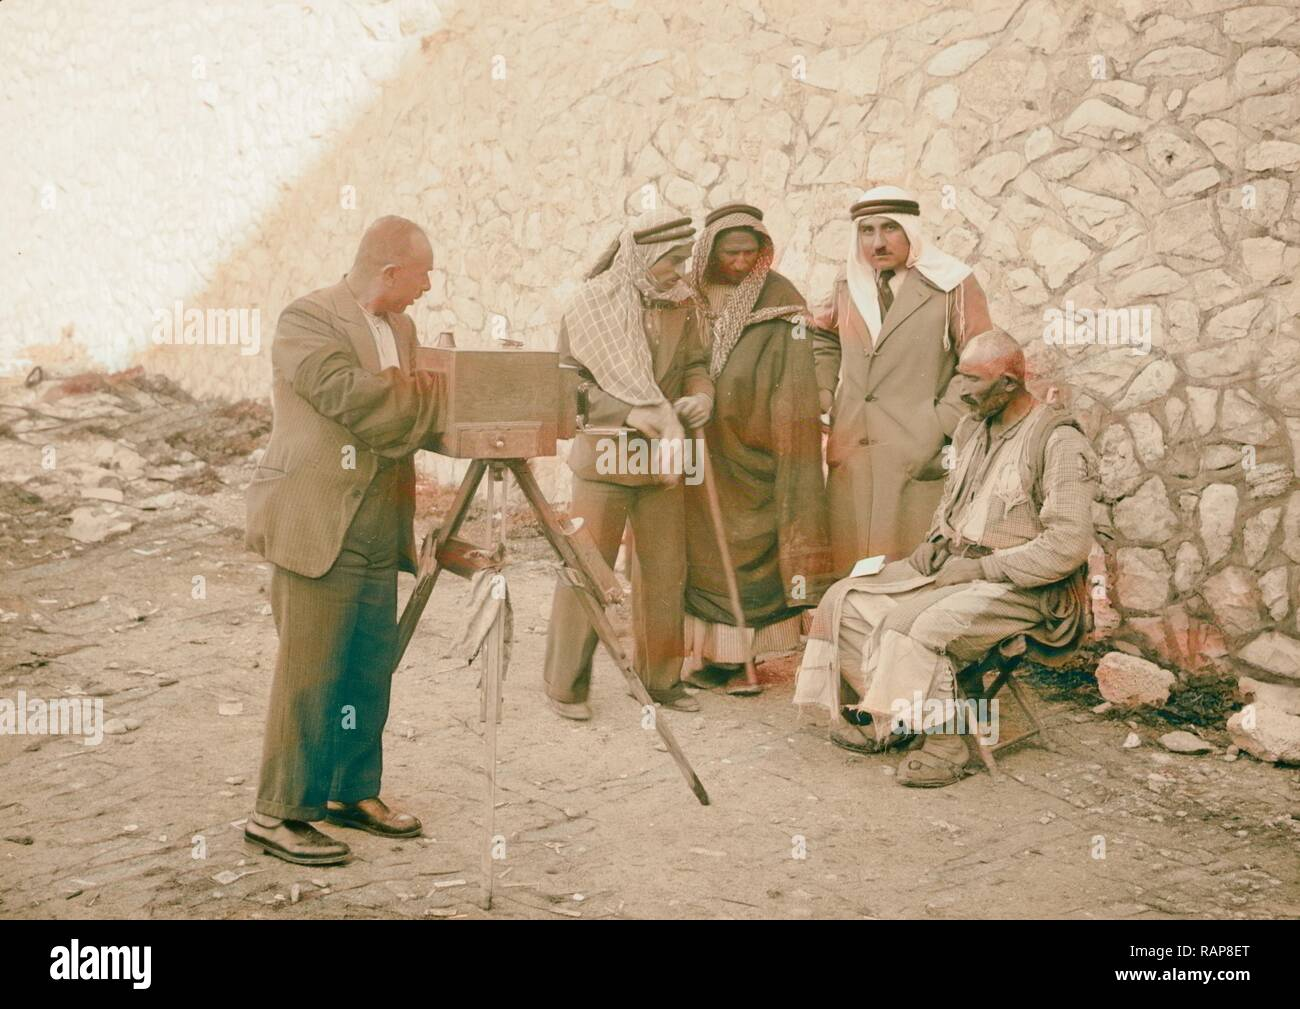 Peasants being photographed for identity cards, headdress removed. Photographer with camera taking a photograph of a reimagined - Stock Image